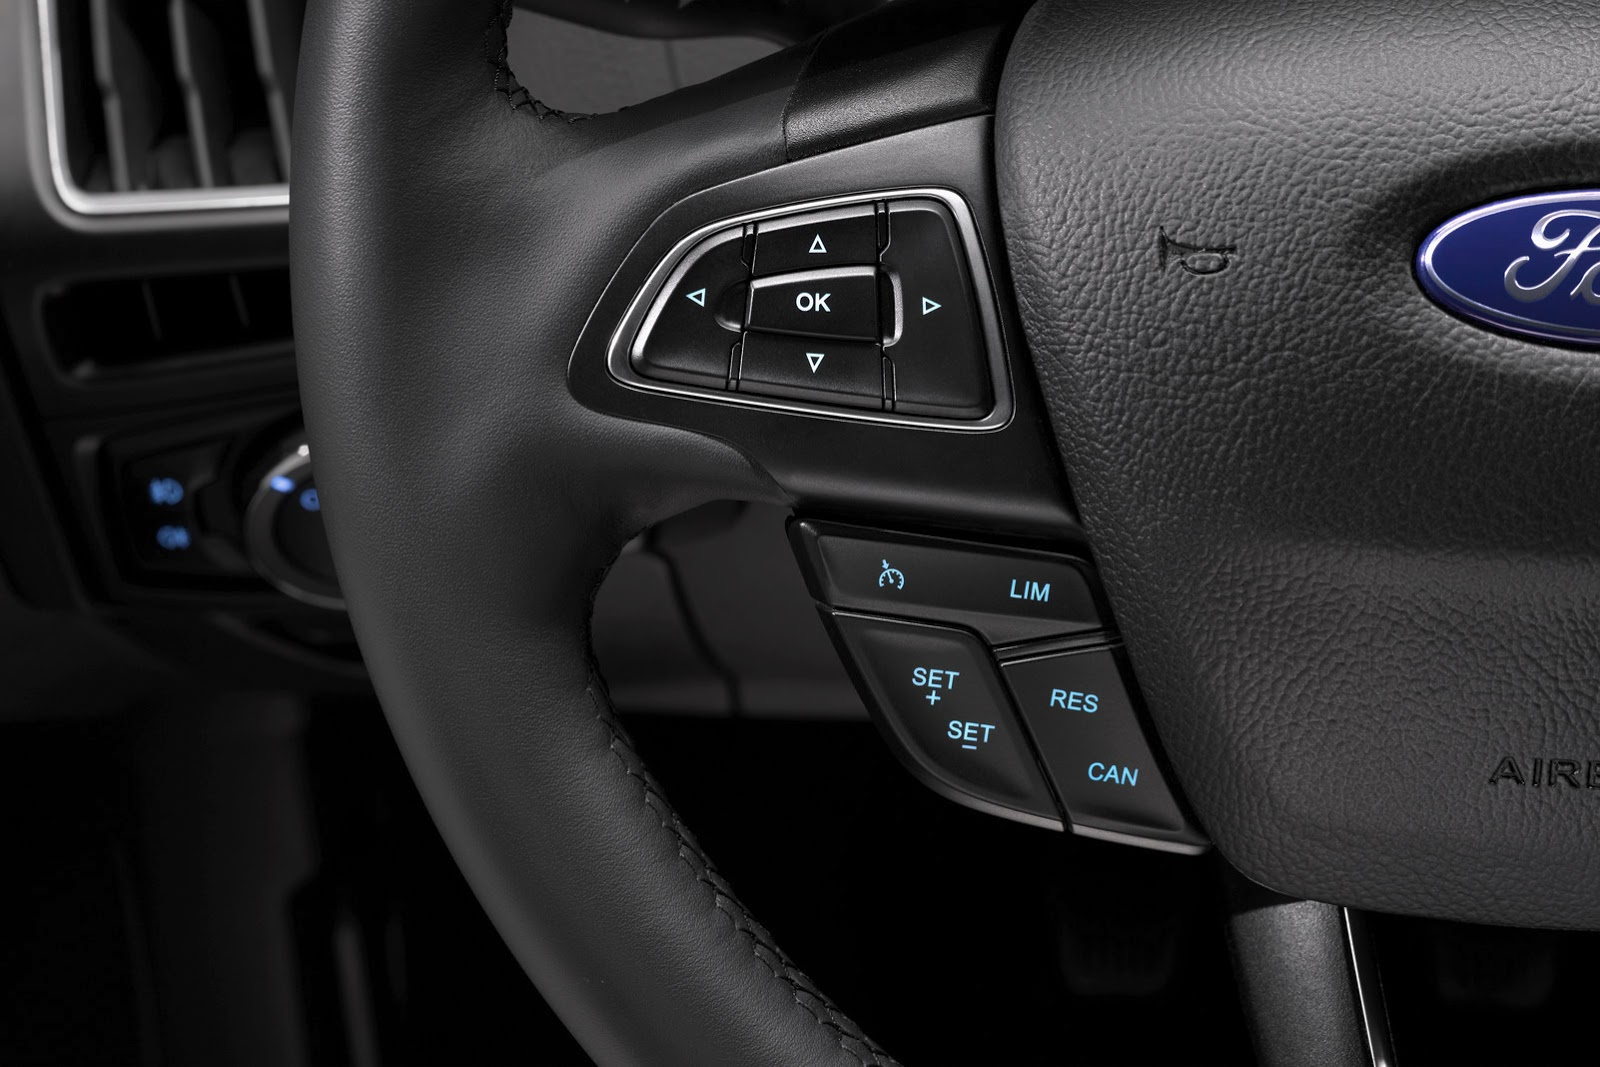 New Ford Focus Gets A Sharper Grille And Quot Cockpit Like